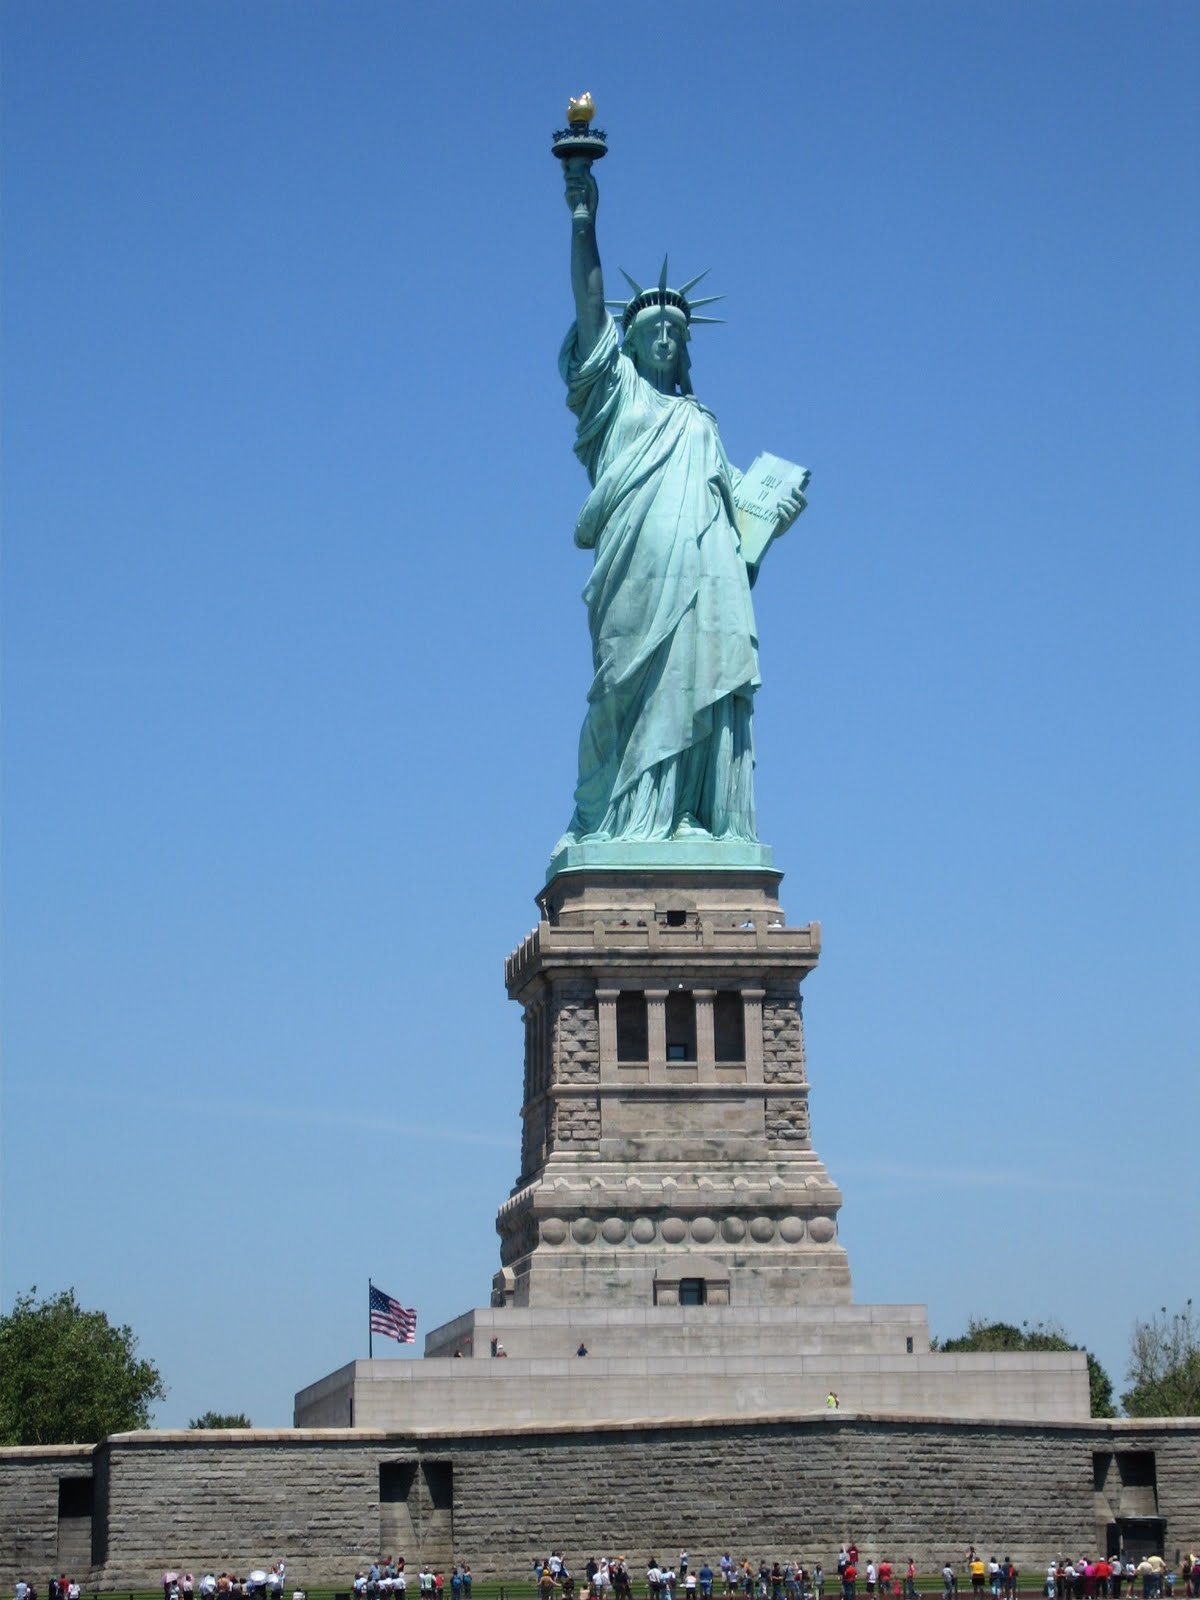 Engineer Of Knowledge The Statue Of Liberty The Symbol Of American